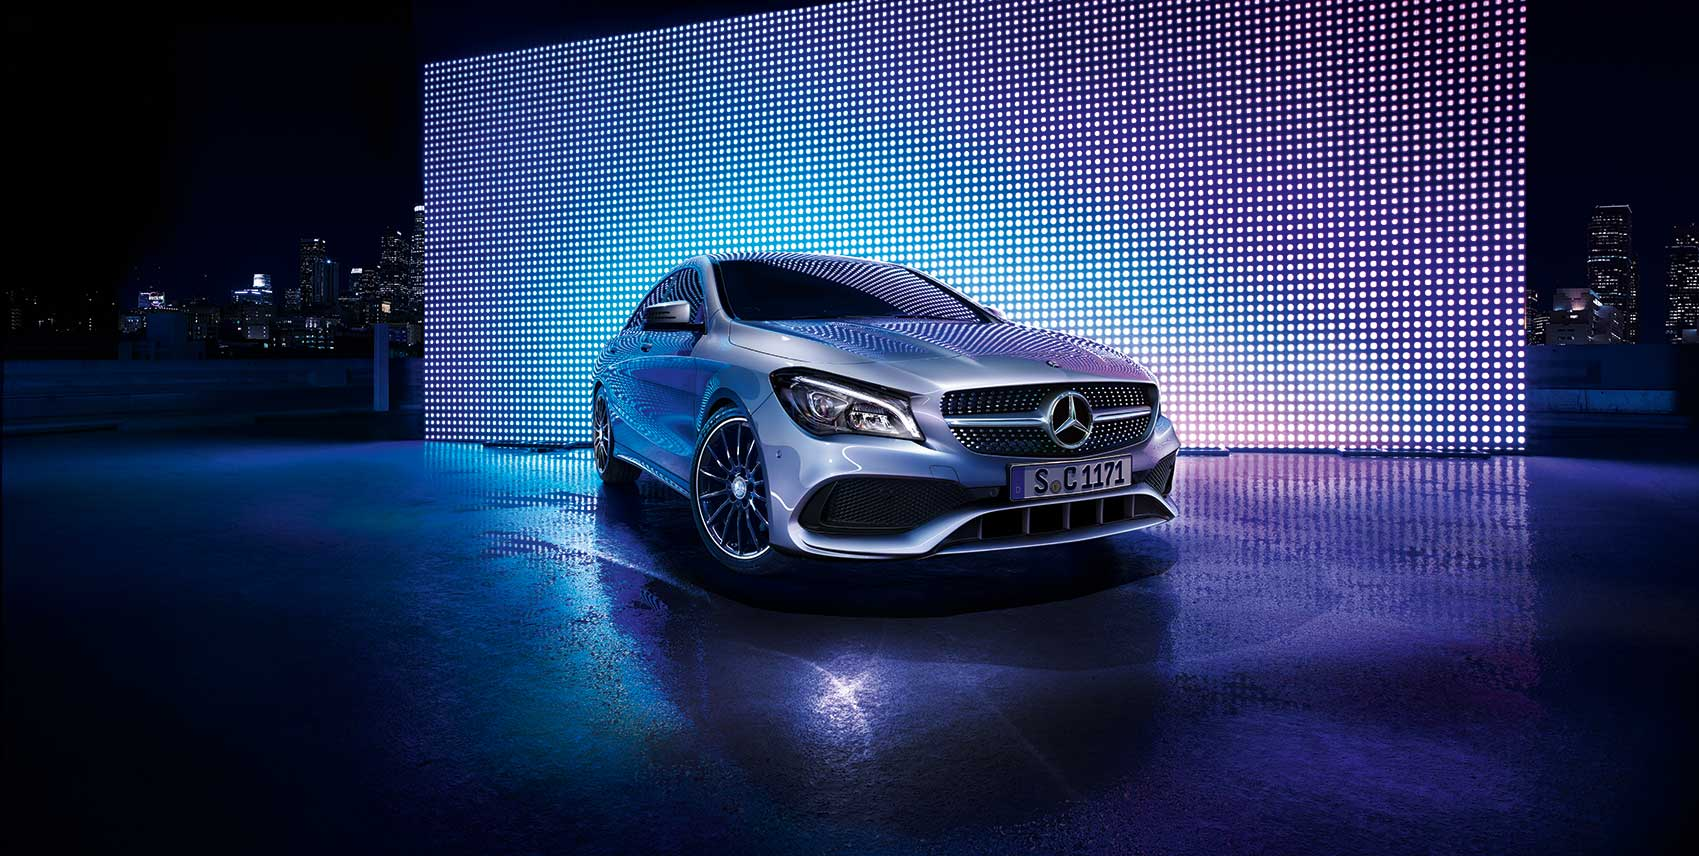 2019 Mercedes-Benz CLA 250 4MATIC Coupé full